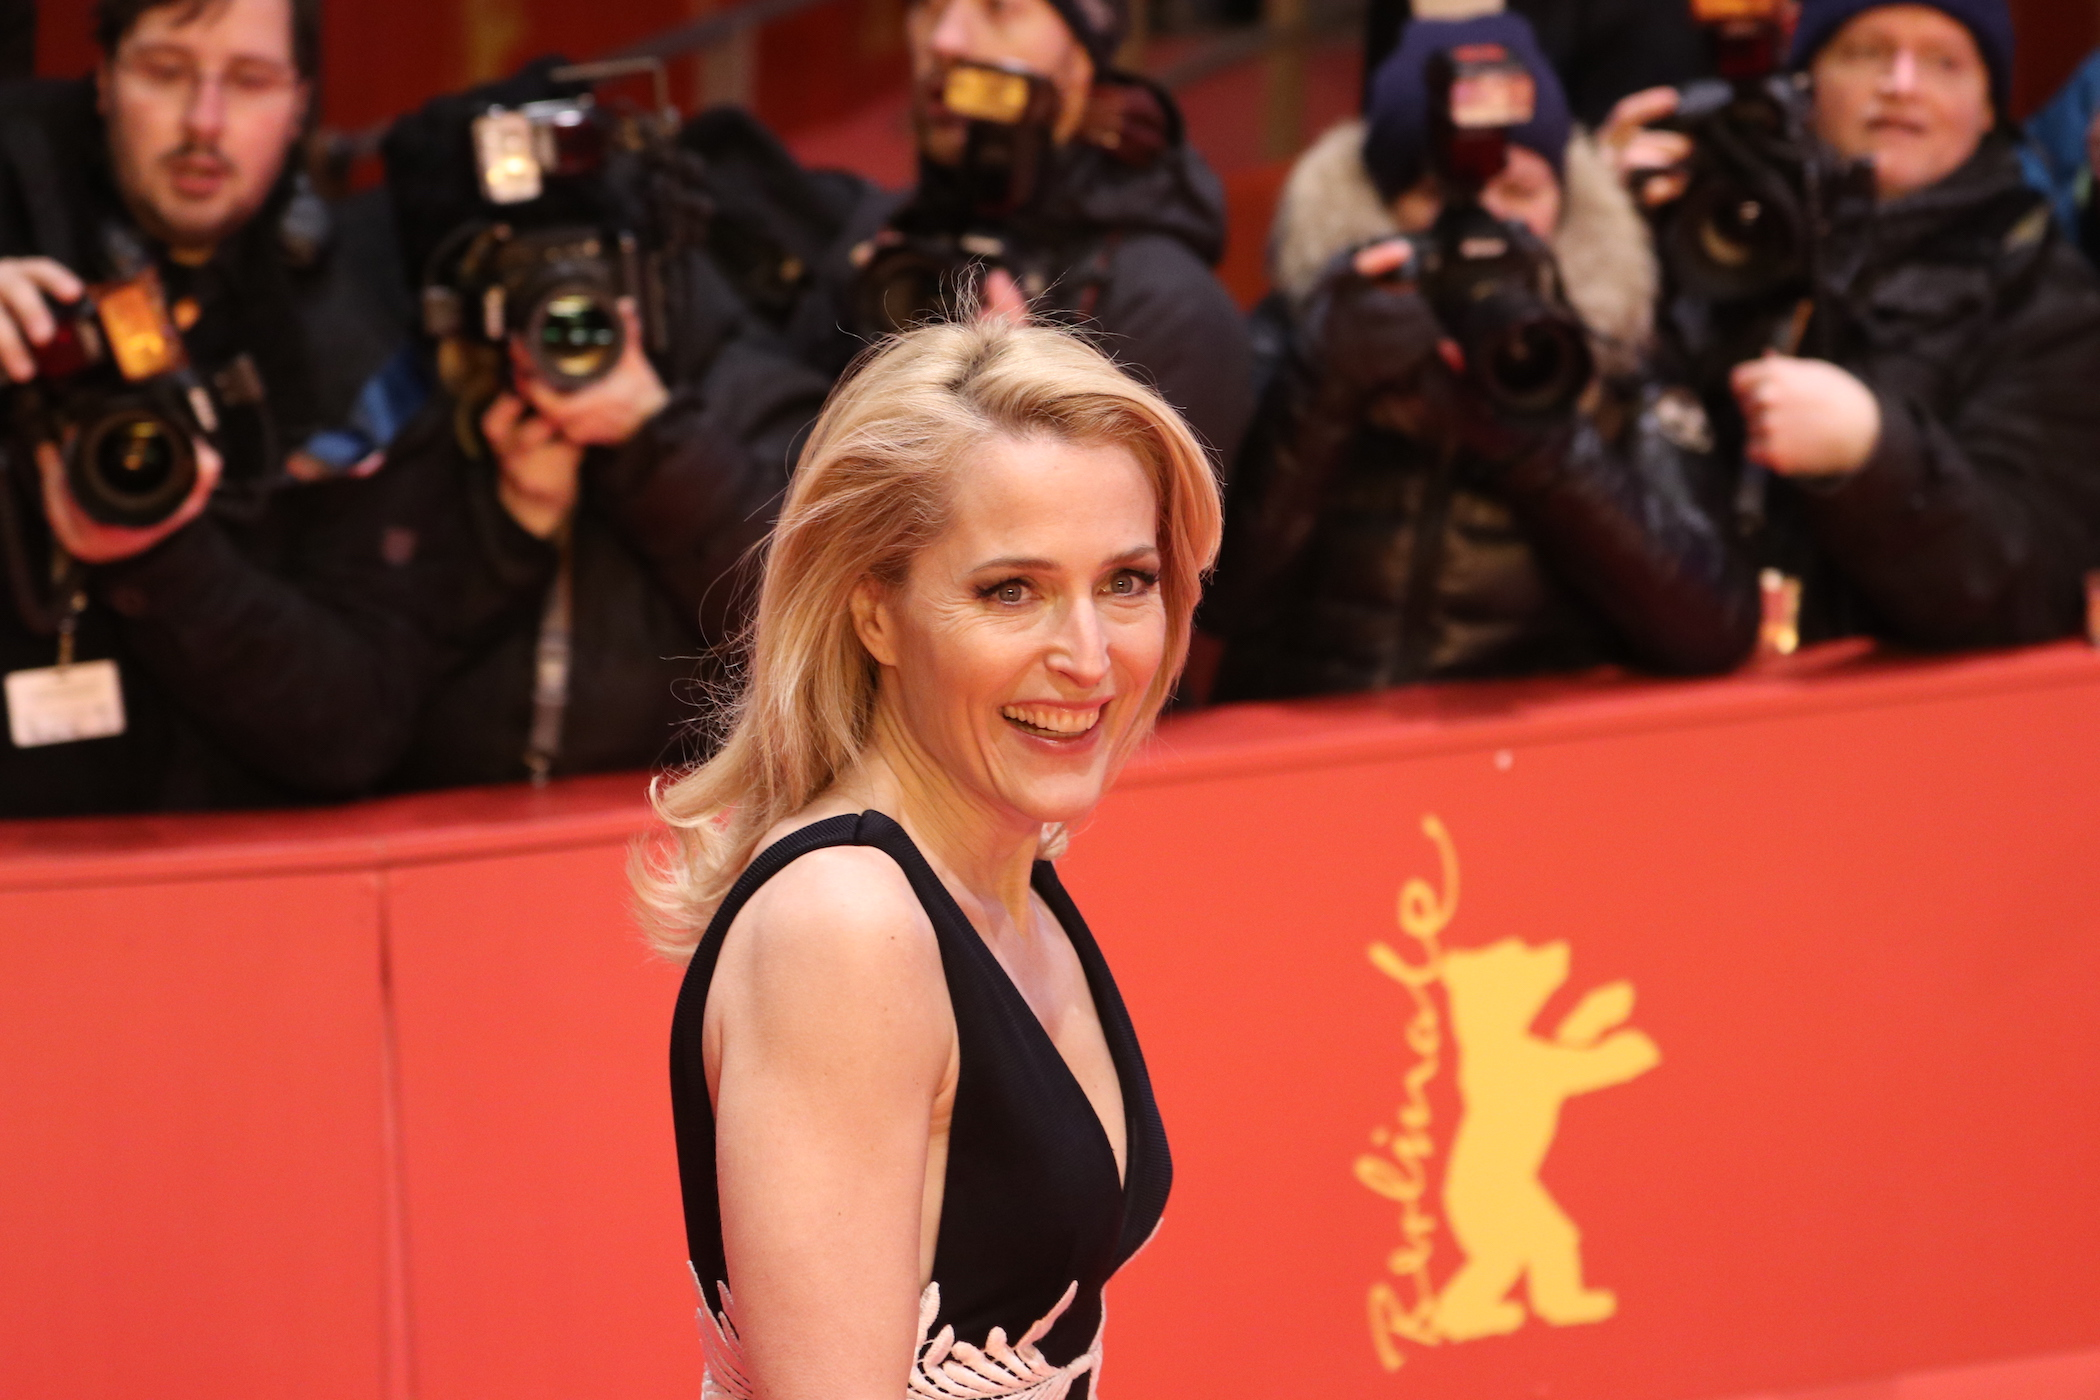 Berlino 2017: Gillian Anderson sorridente sul red carpet di Viceroy's House